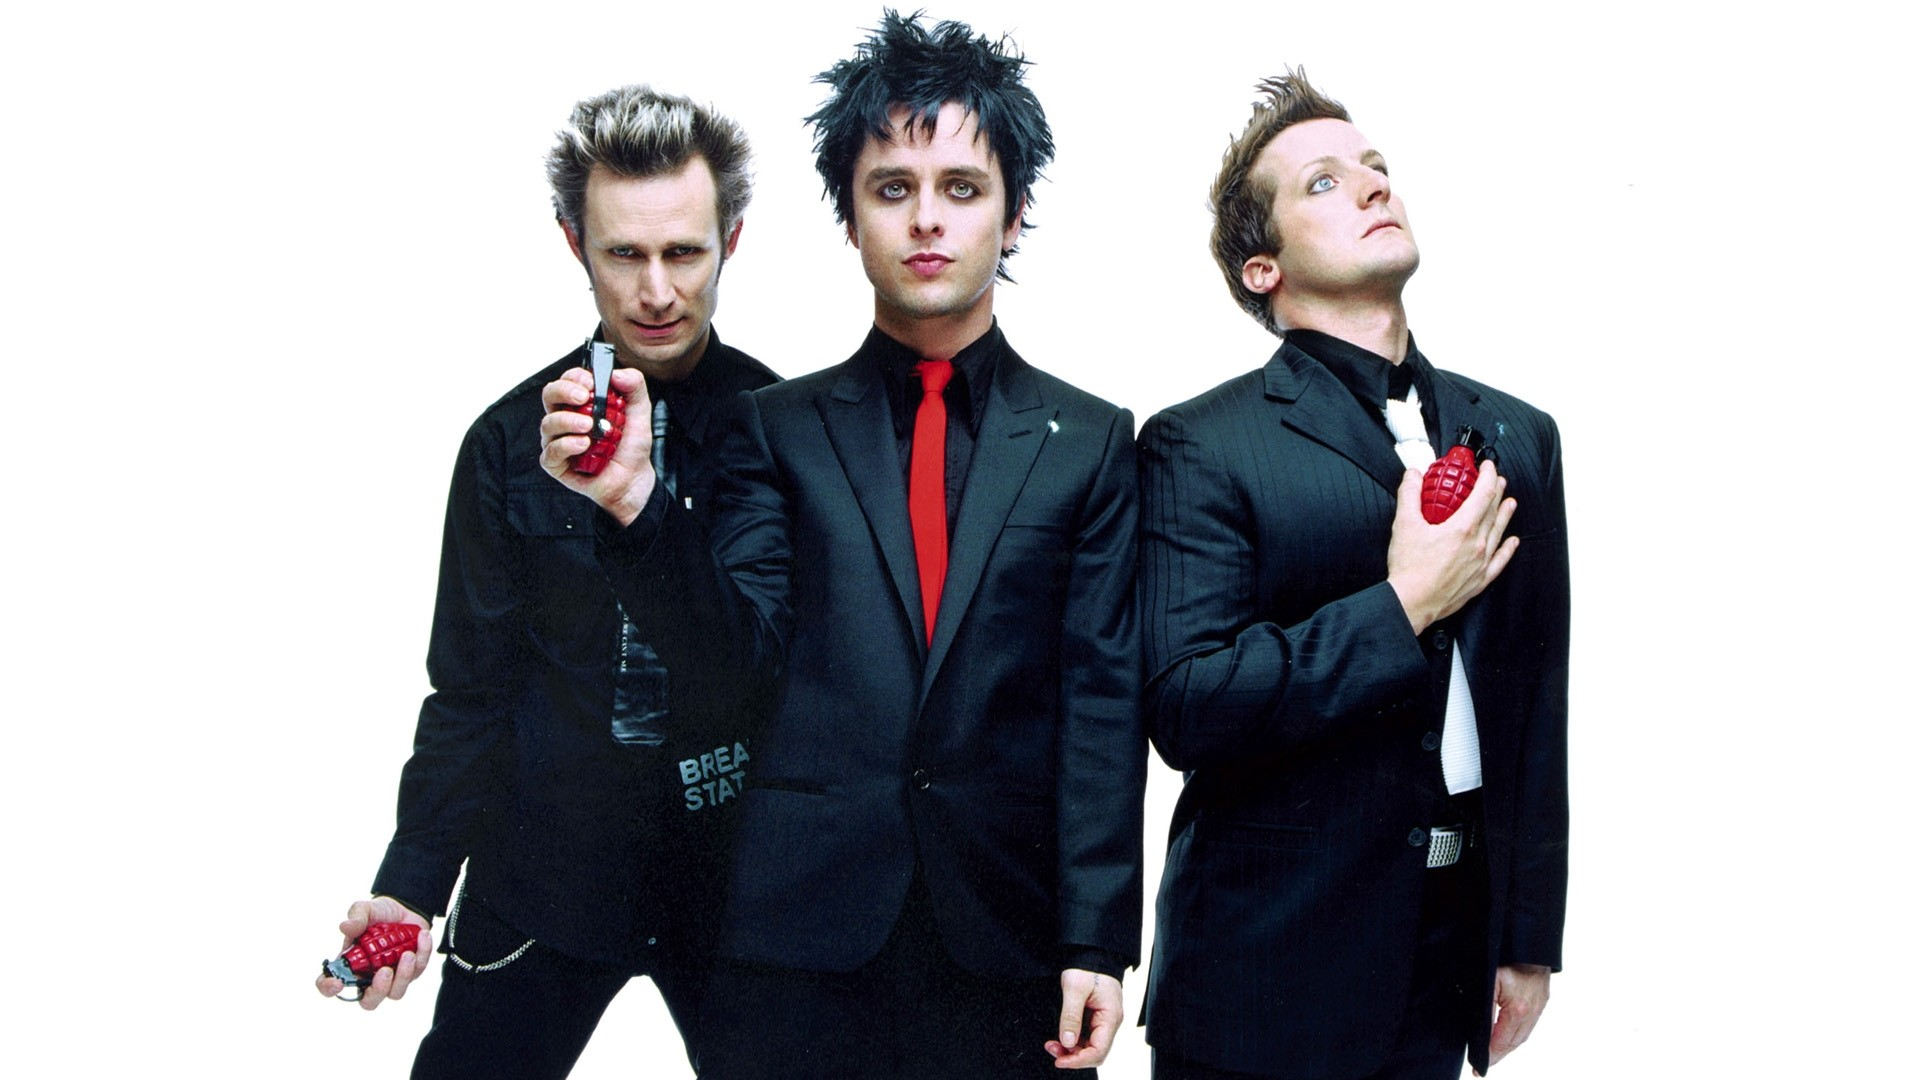 Green Day Background Wallpaper